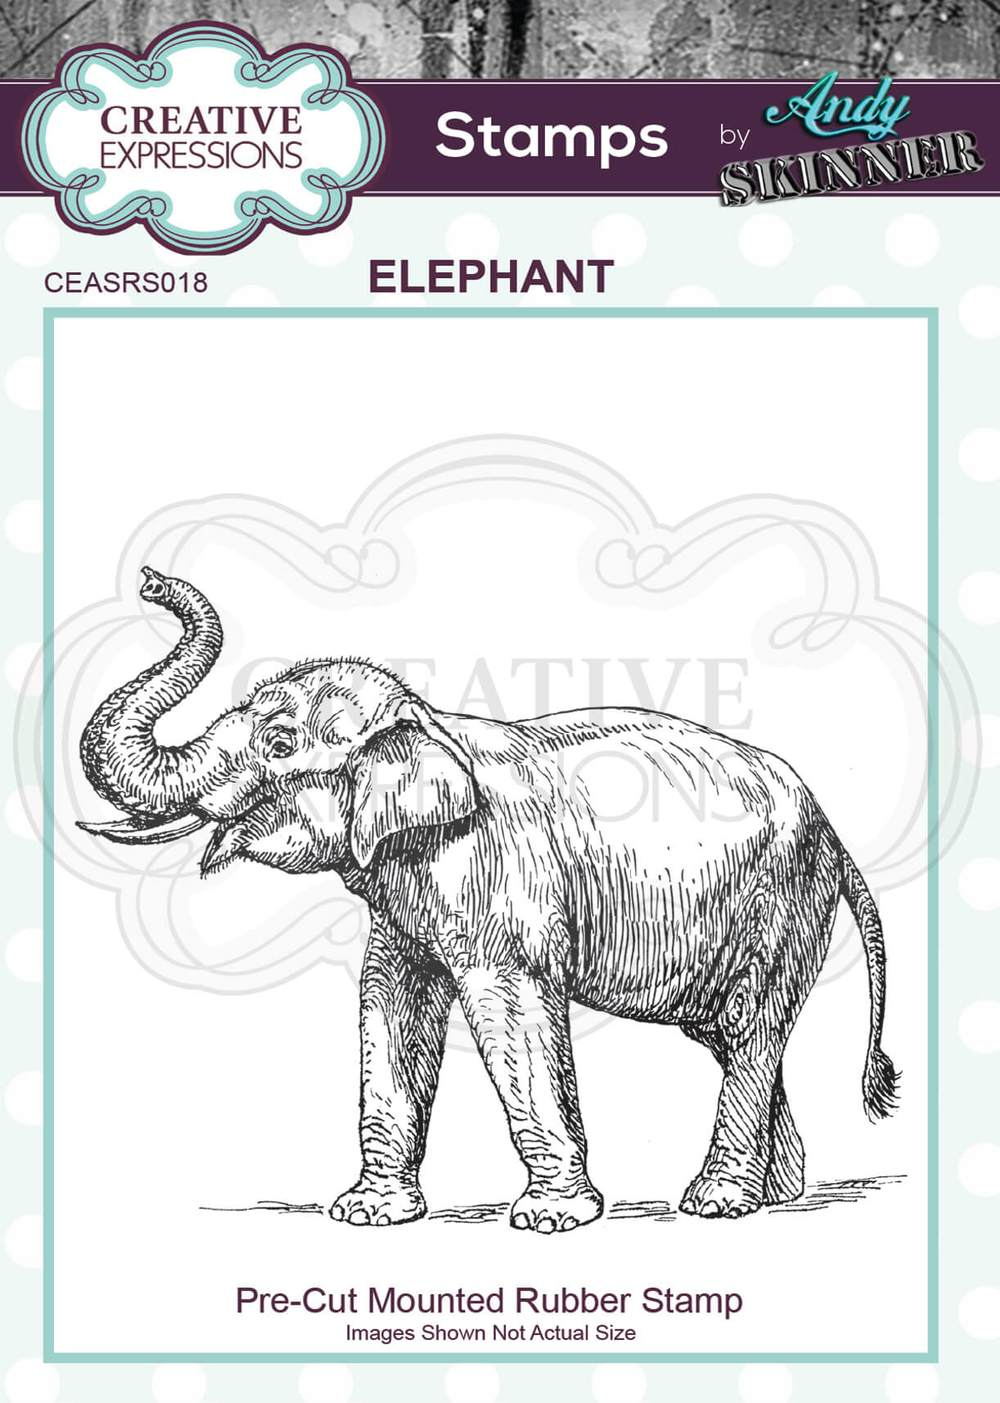 Creative Expressions - Rubber Cling Stamp - Andy Skinner - Elephant